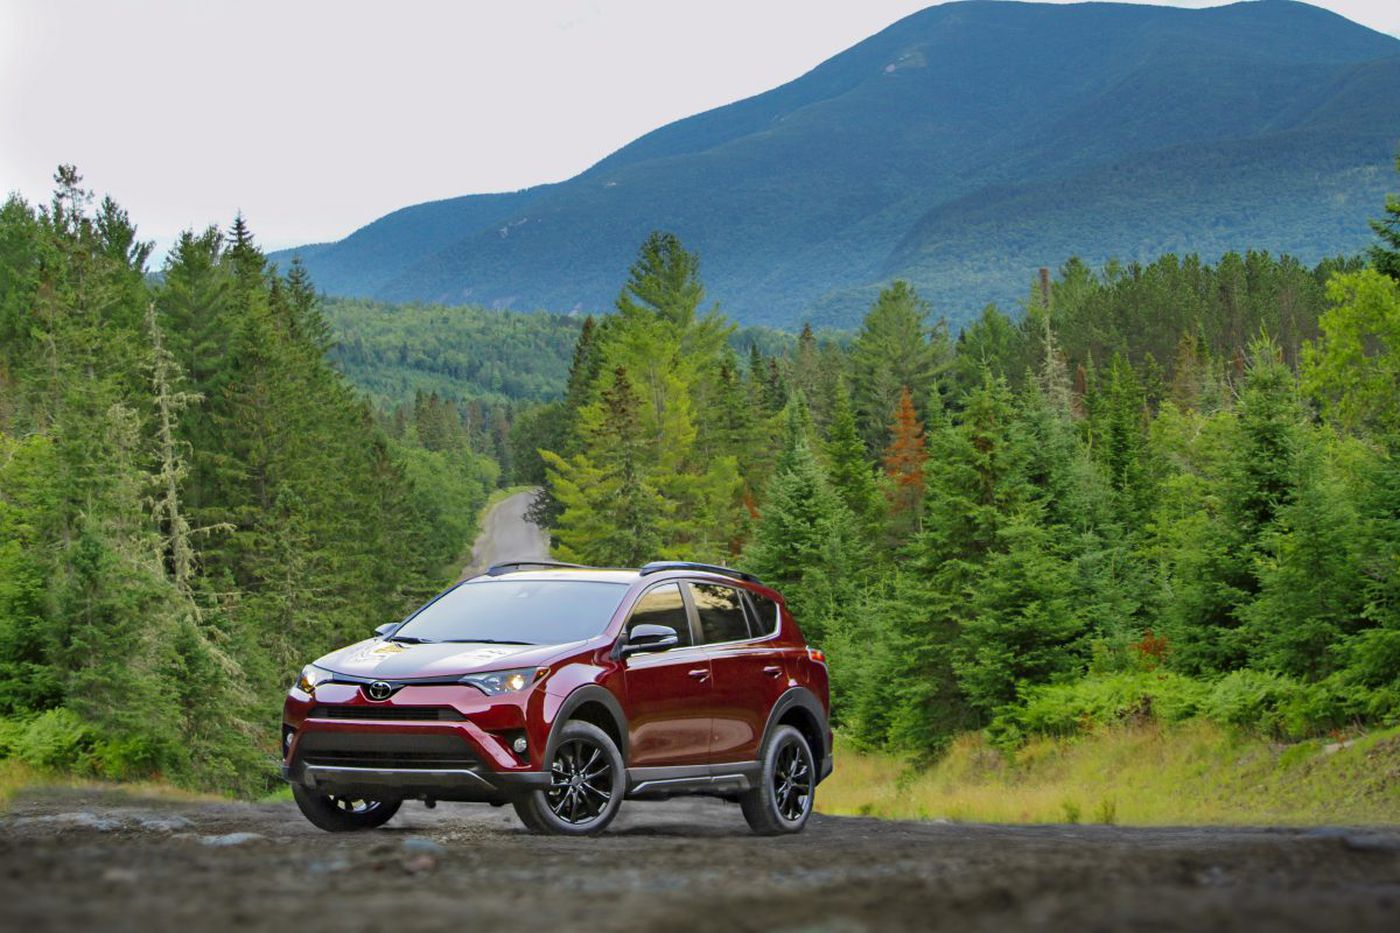 Toyota's RAV4 small crossover stays the course